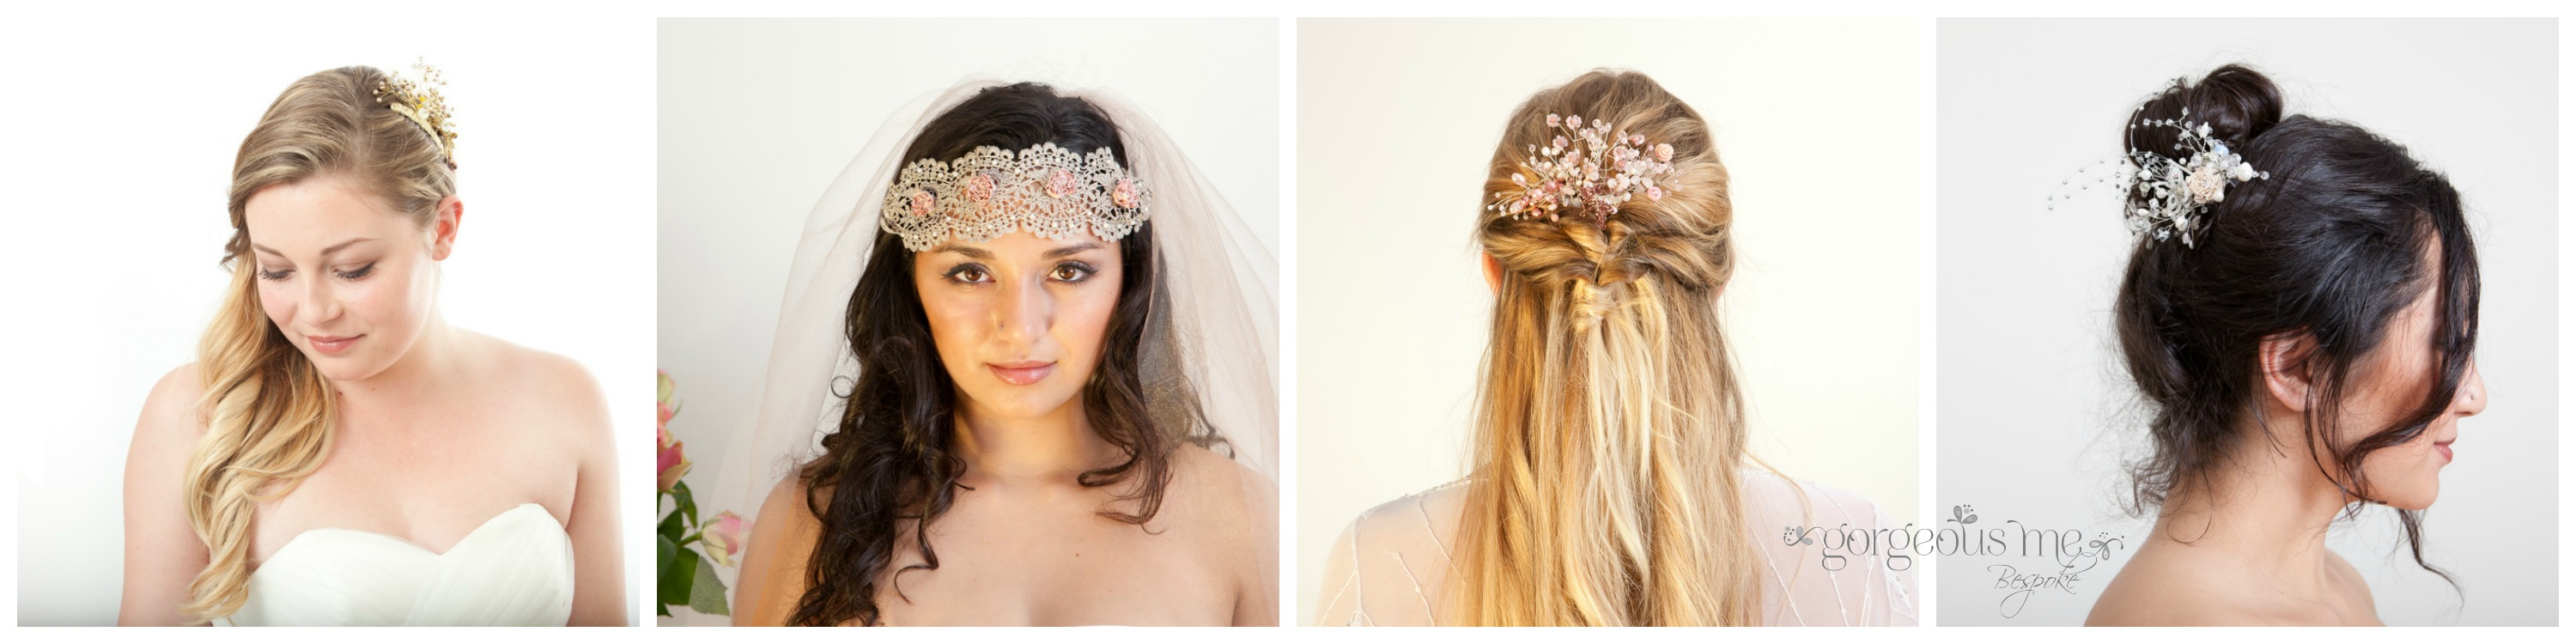 Bridal and occasion accessories